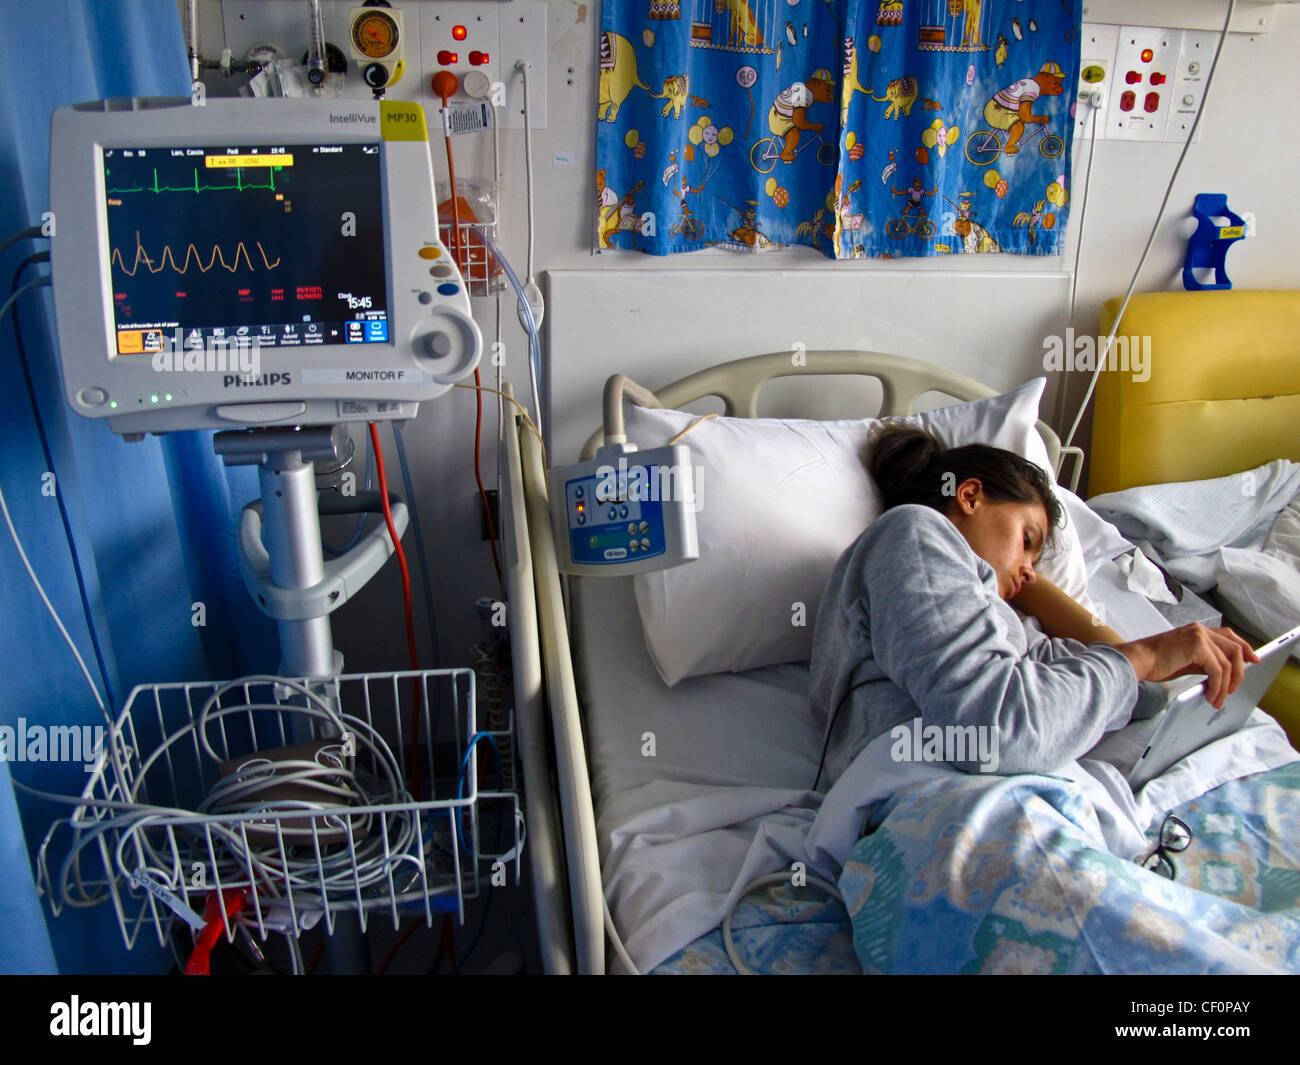 A young girl with anorexia nervosa is treated in hospital by being fed nutrients through a tube - Stock Image